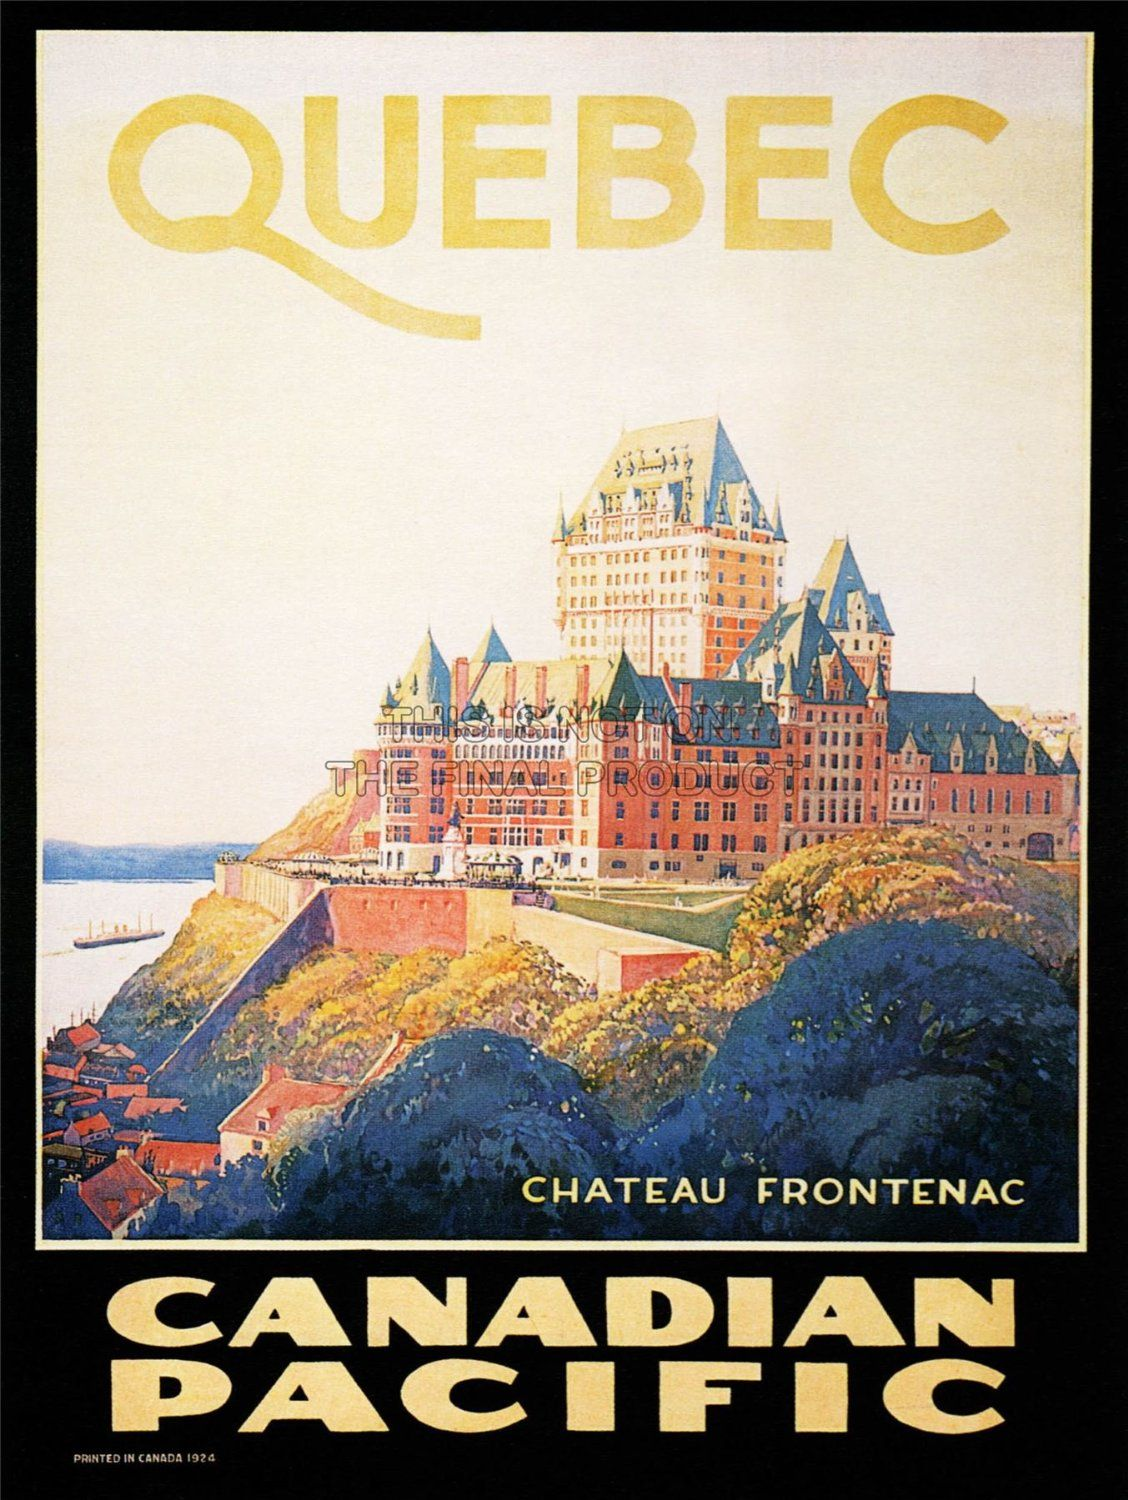 Travel Quebec Canada Canadian Pacific Chateau Frontenac